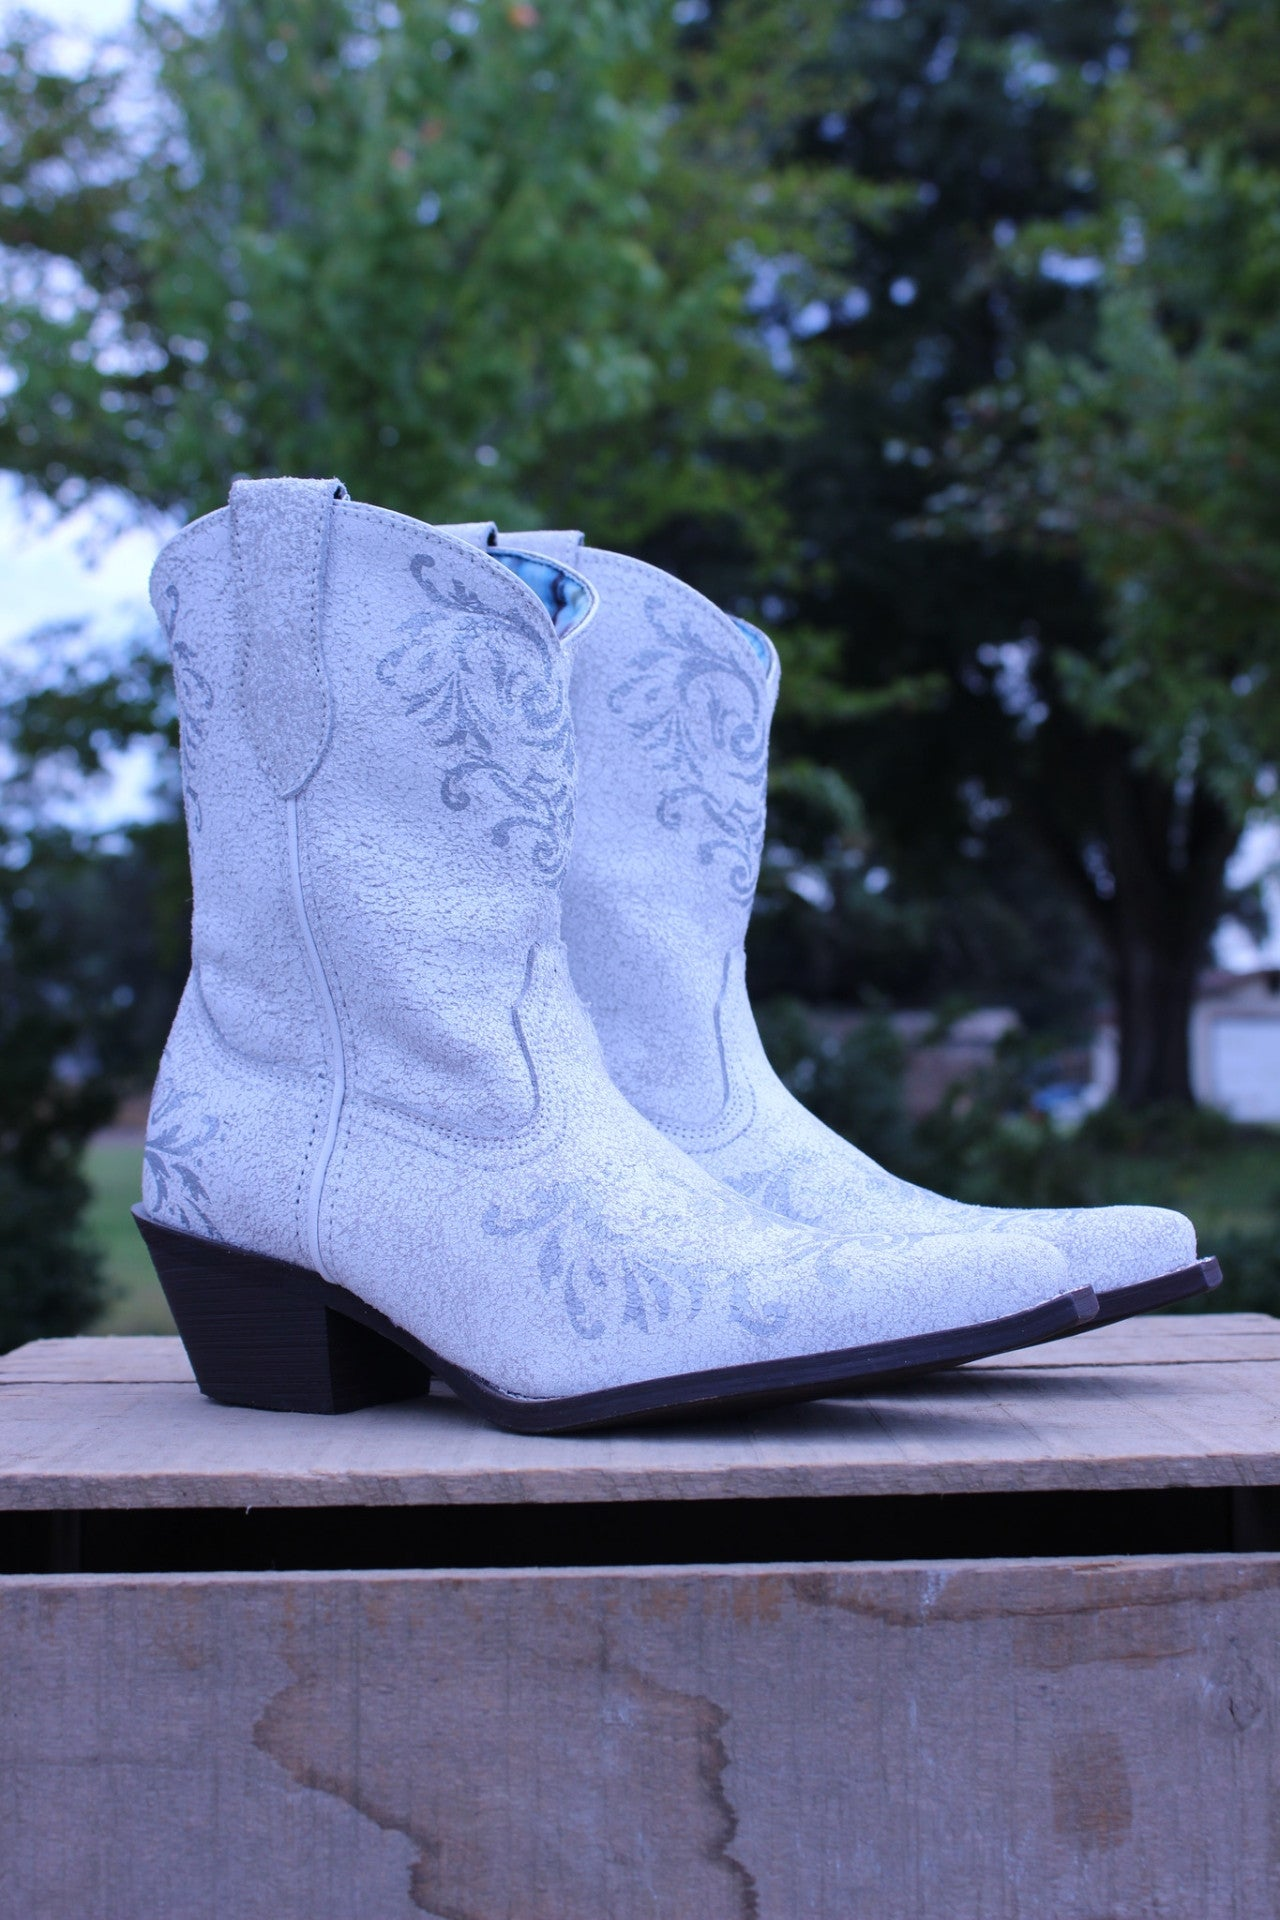 Laredo: Medallion Boot, White